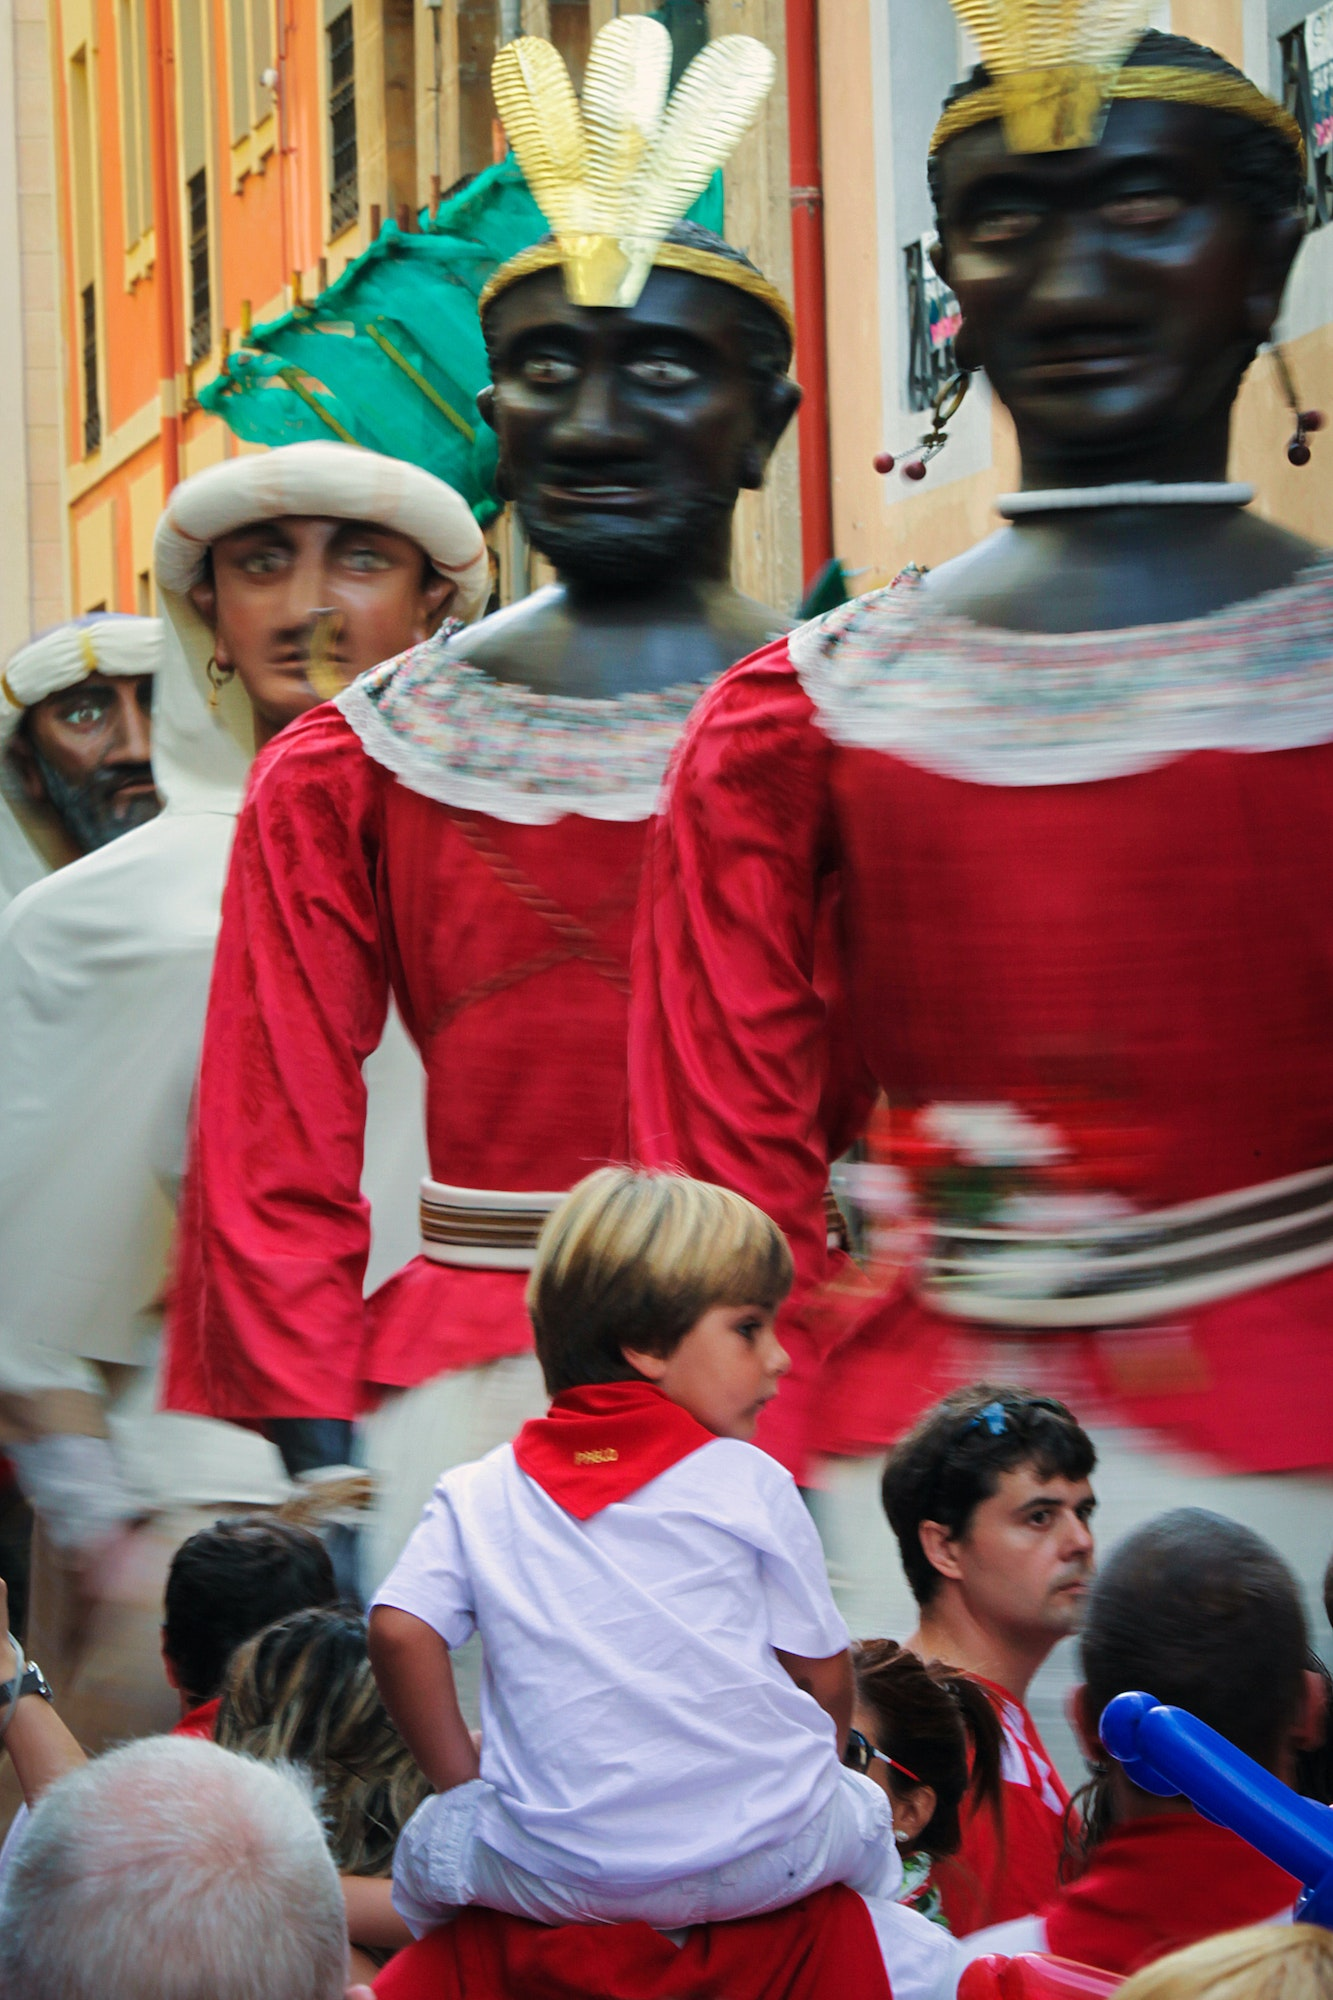 The Giants and Big Heads parade comprises papier-mâché figures that resemble mythical kings and queens.